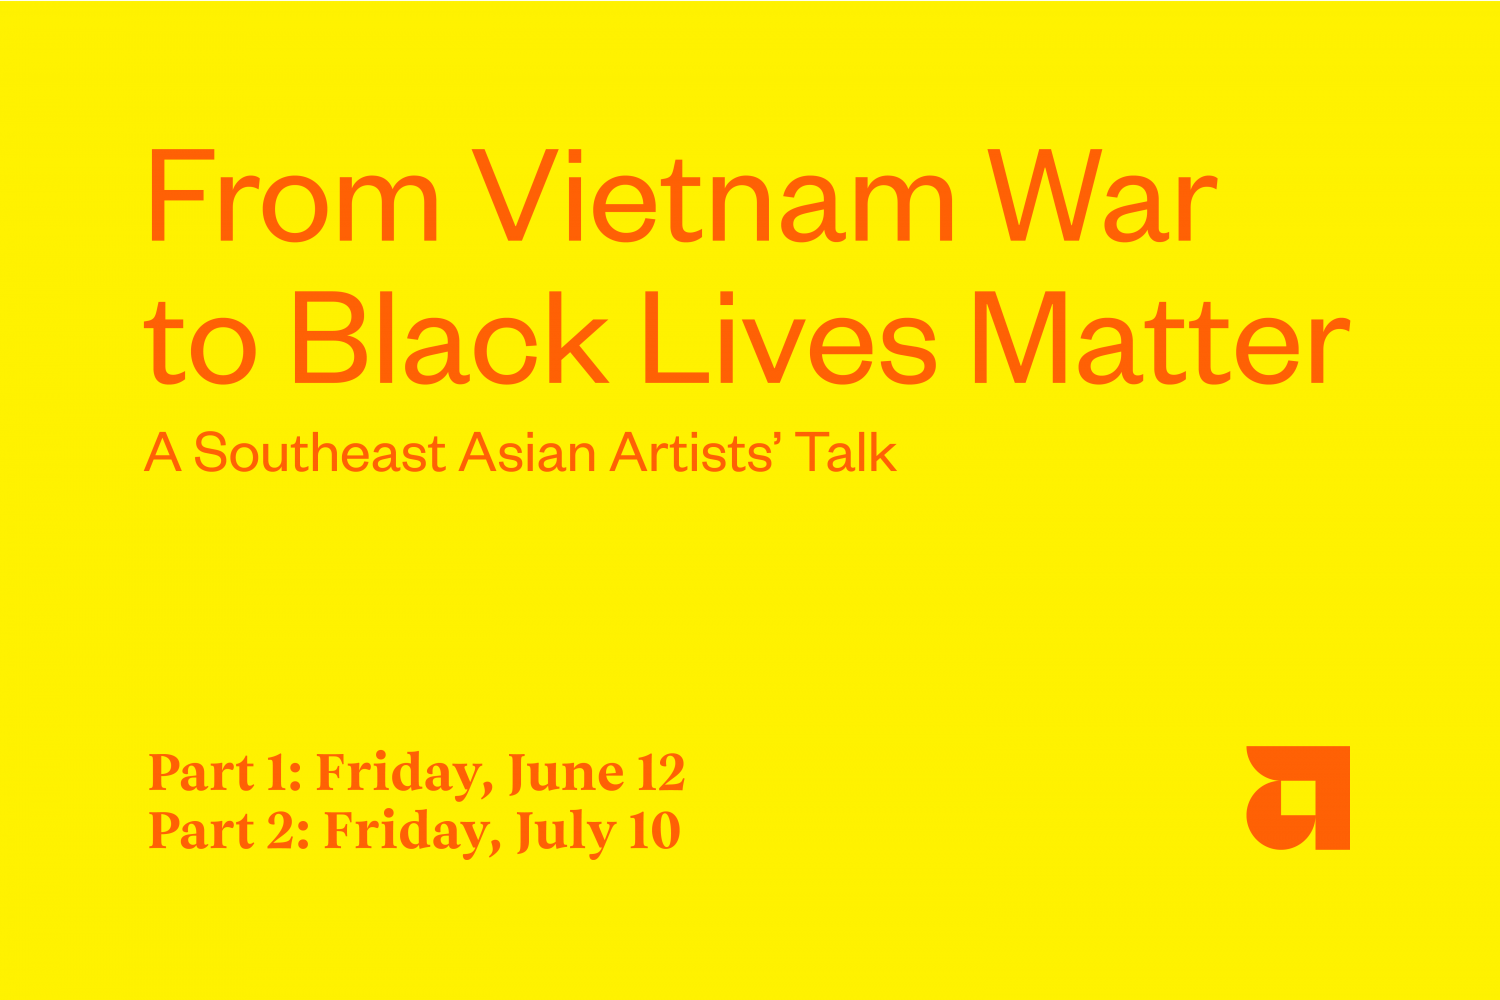 From Vietnam War to Black Lives Matter: A Southeast Asian Artists Talk